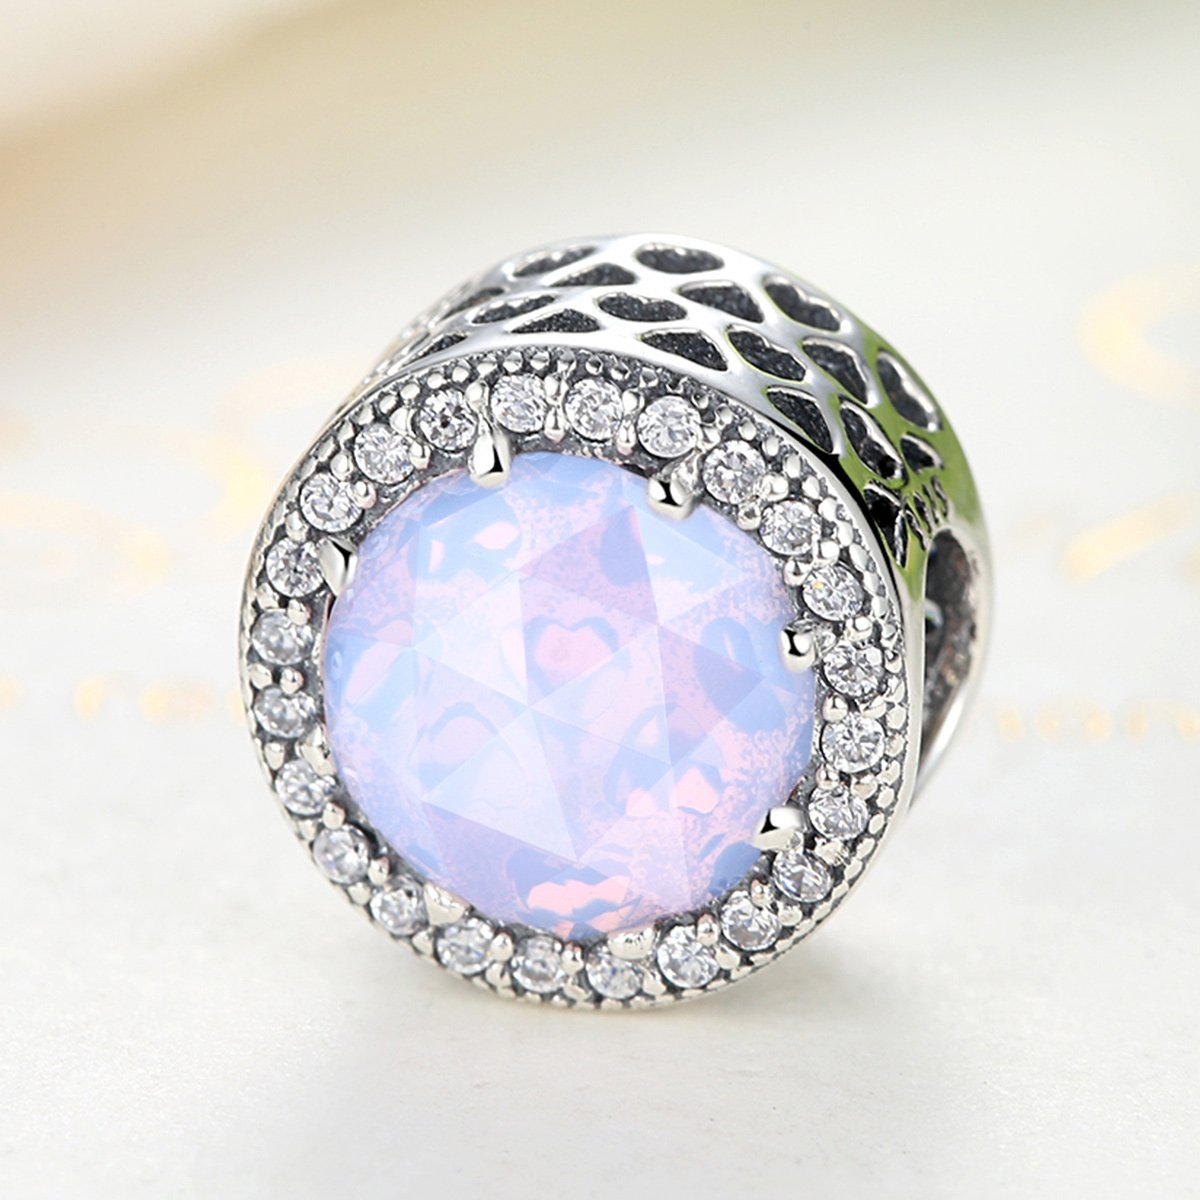 BAMOER Bead and Sterling Silver Charm For Teen Girl Blue Sky Radiant Hearts with Zirconia for Her by BAMOER (Image #4)